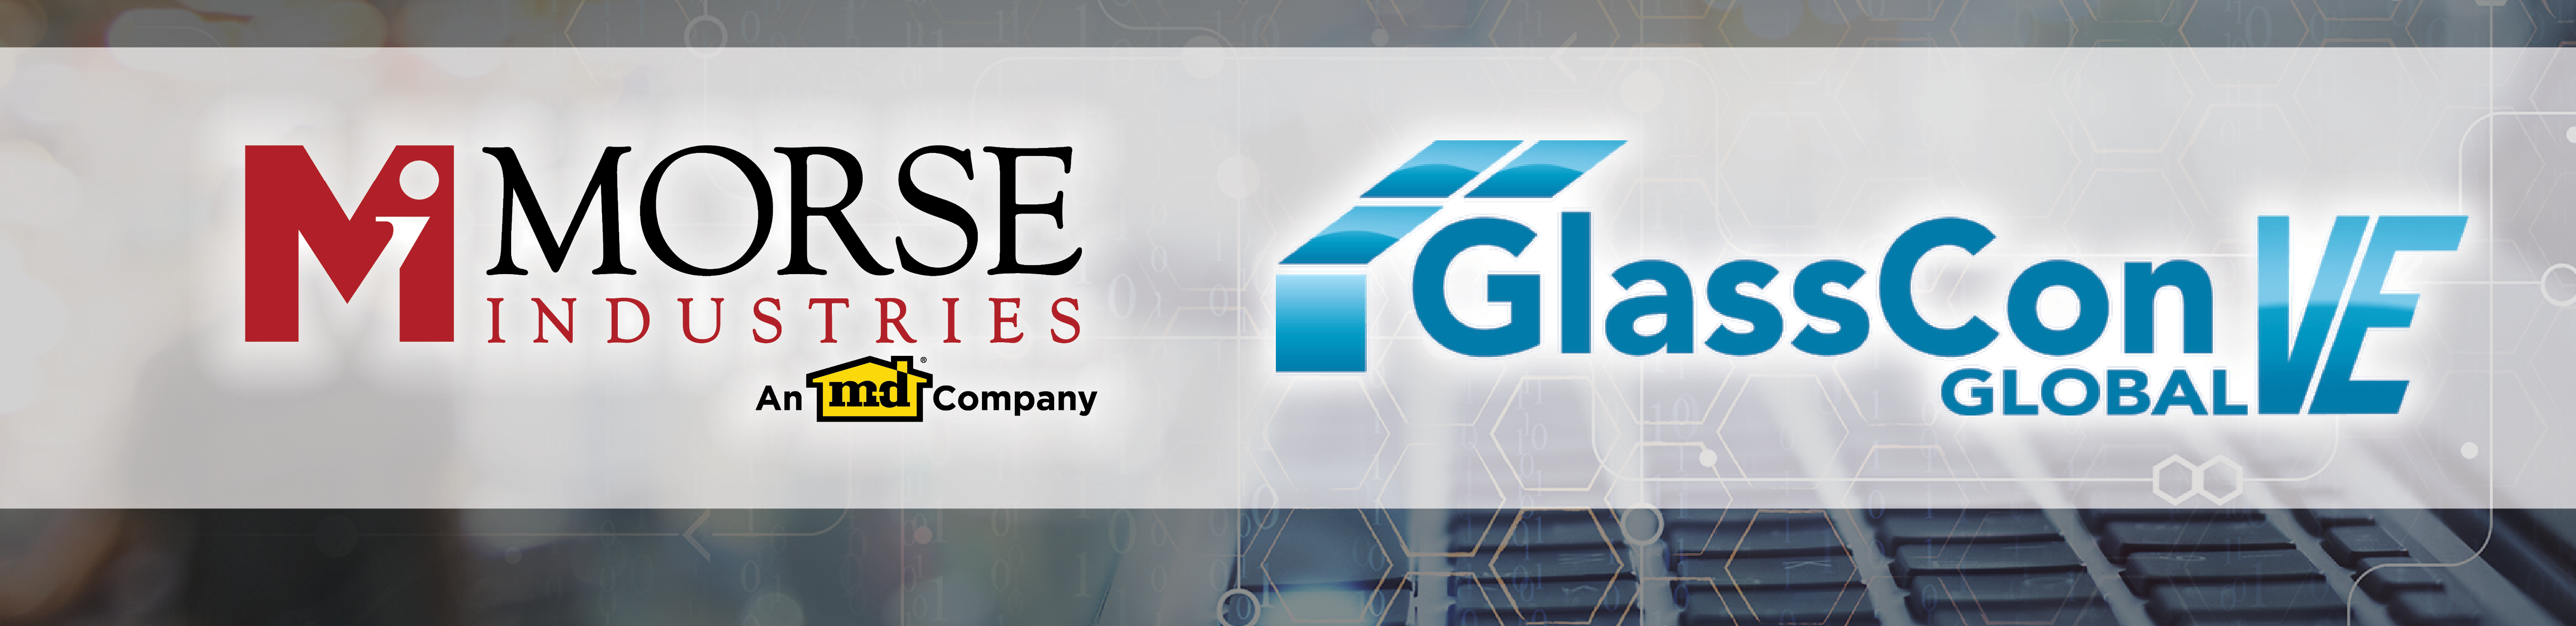 GlassCon Morse Industries Introduction_Header (c)-1